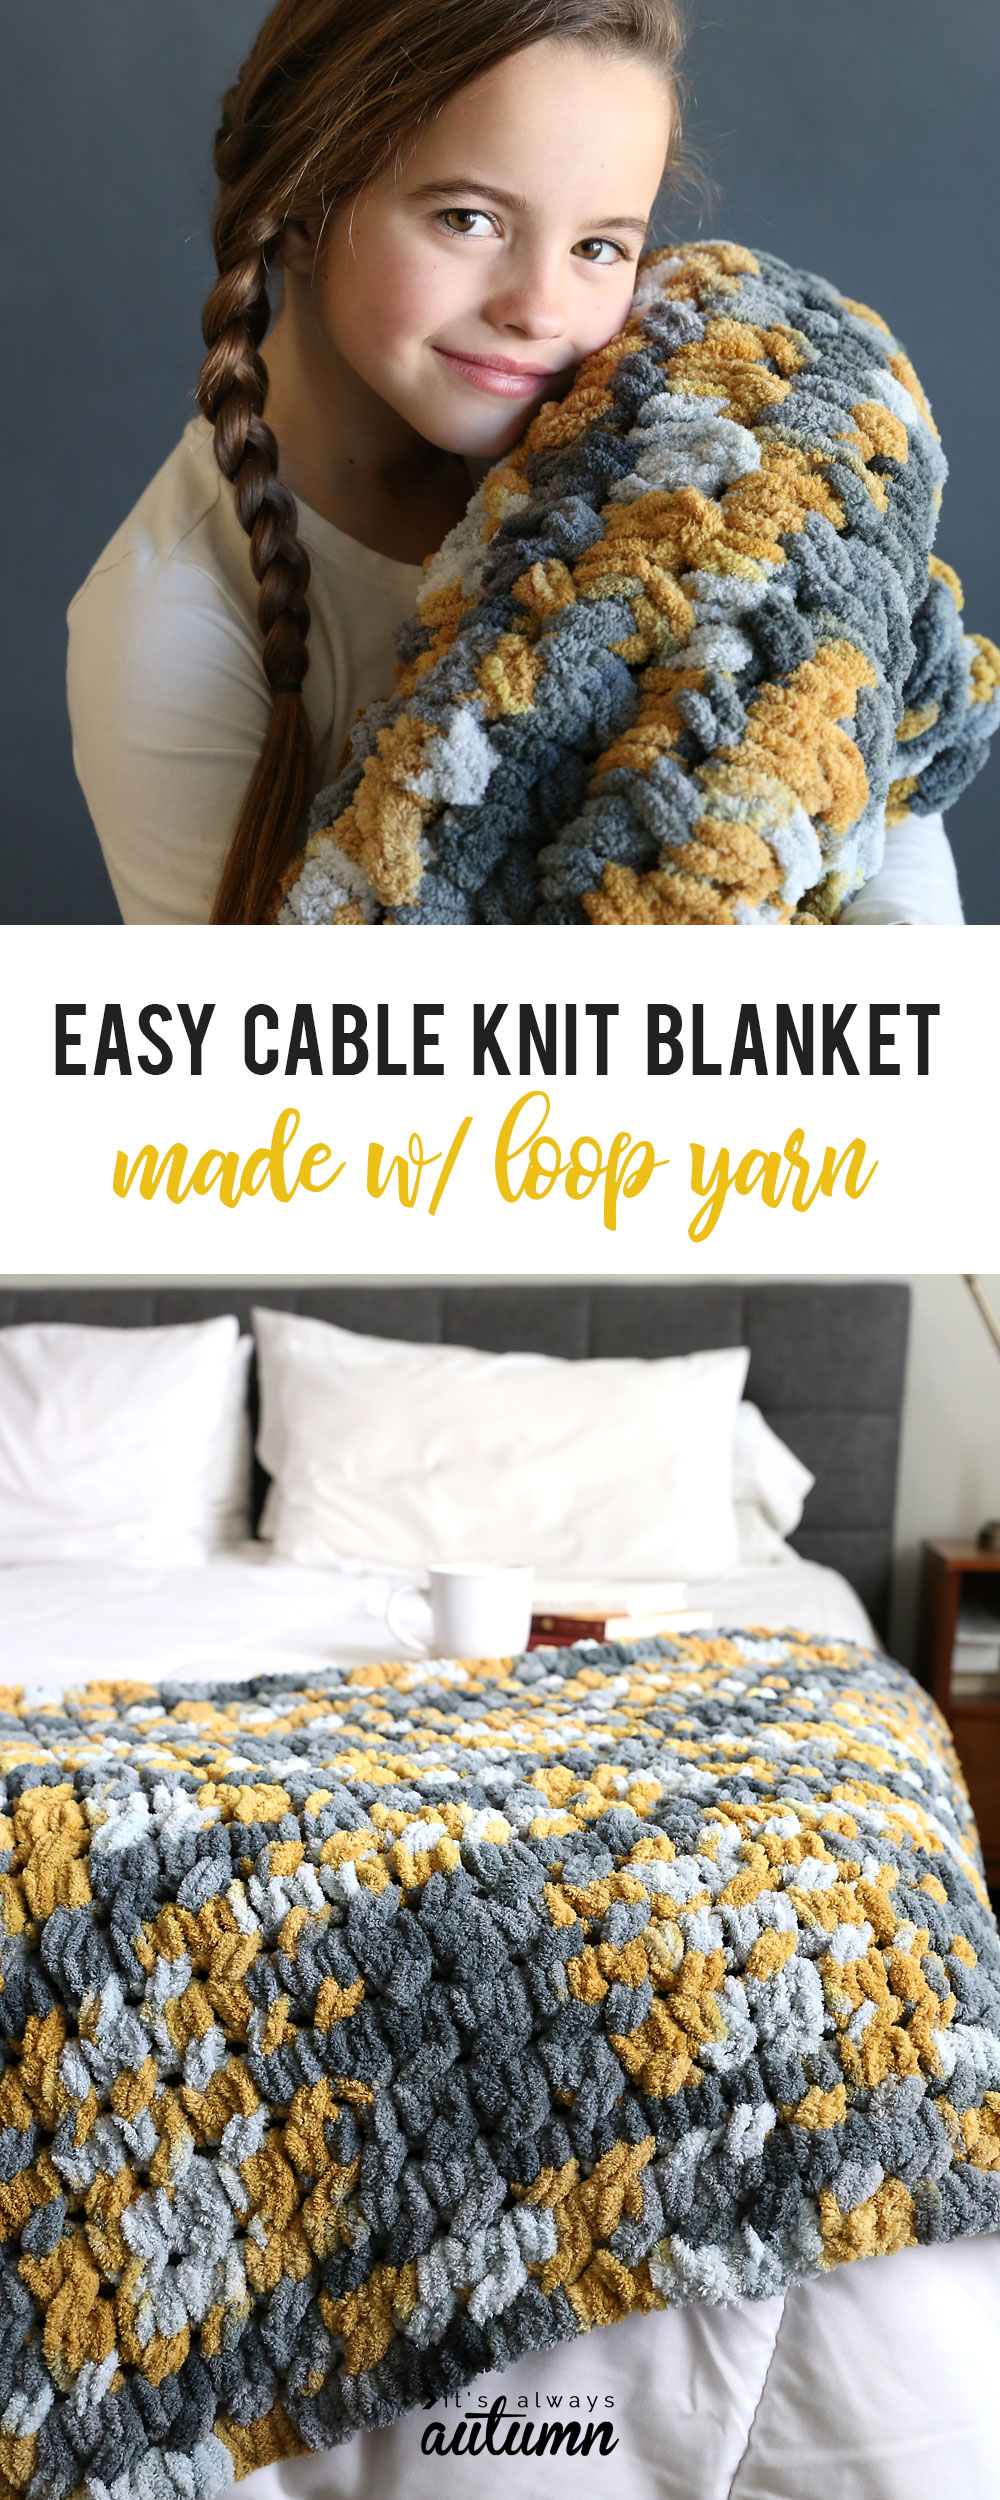 Girl snuggling with easy cable knit blanket made with loop yarn